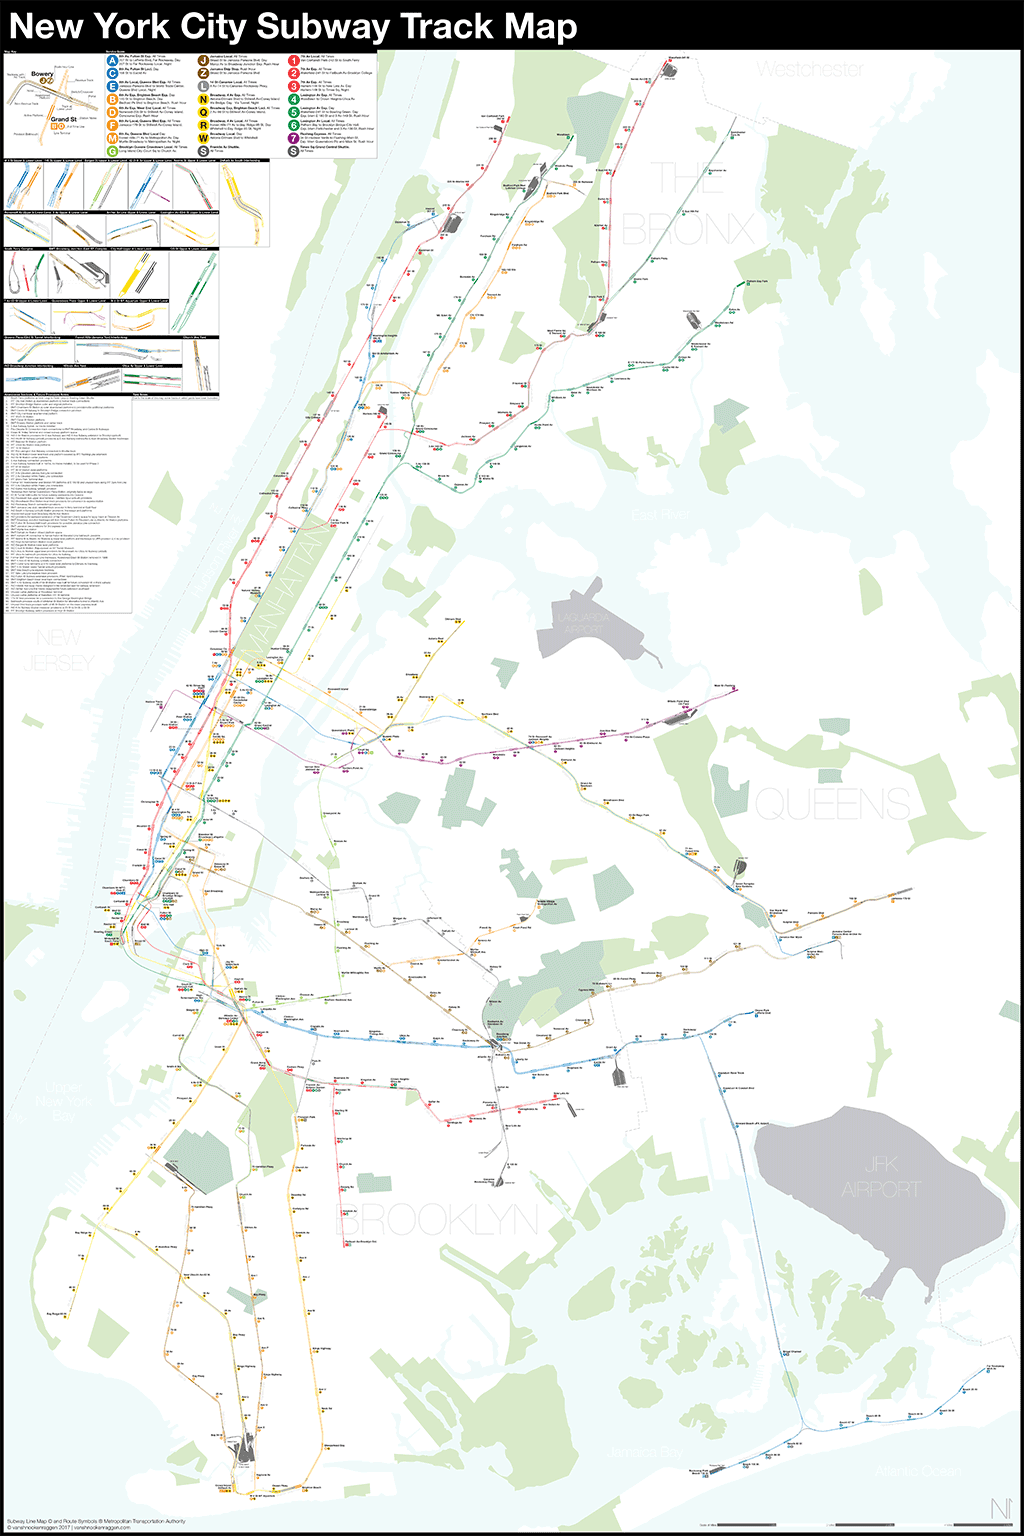 Astoria Subway Map.A Complete And Geographically Accurate Nyc Subway Track Map